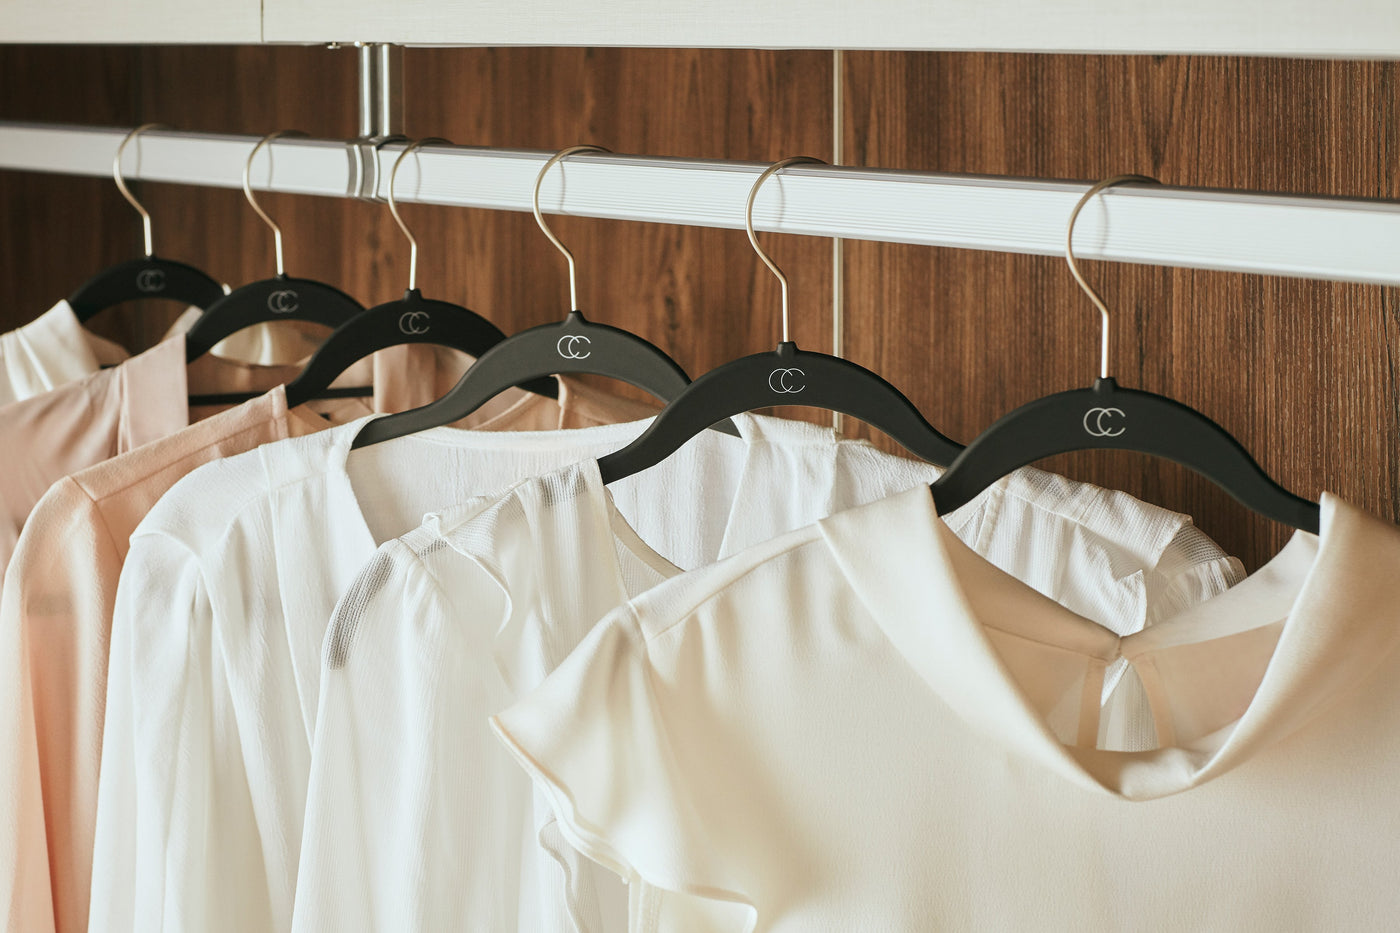 Space Saving Hangers Collection by California Closets Essentials